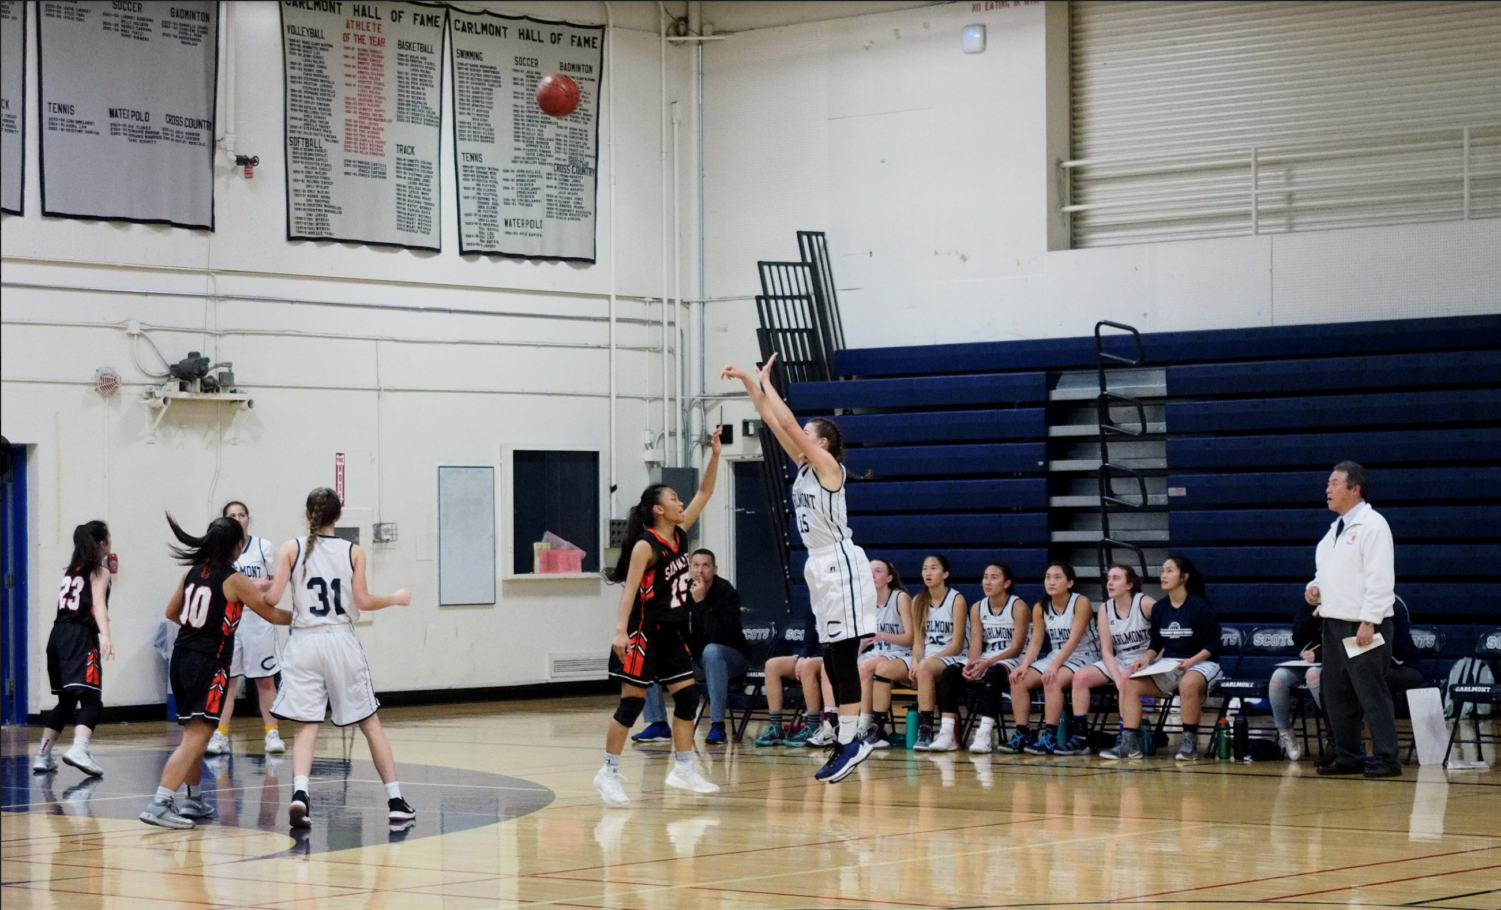 Ashley Trierweiler, a senior, goes for a 3-point shot.